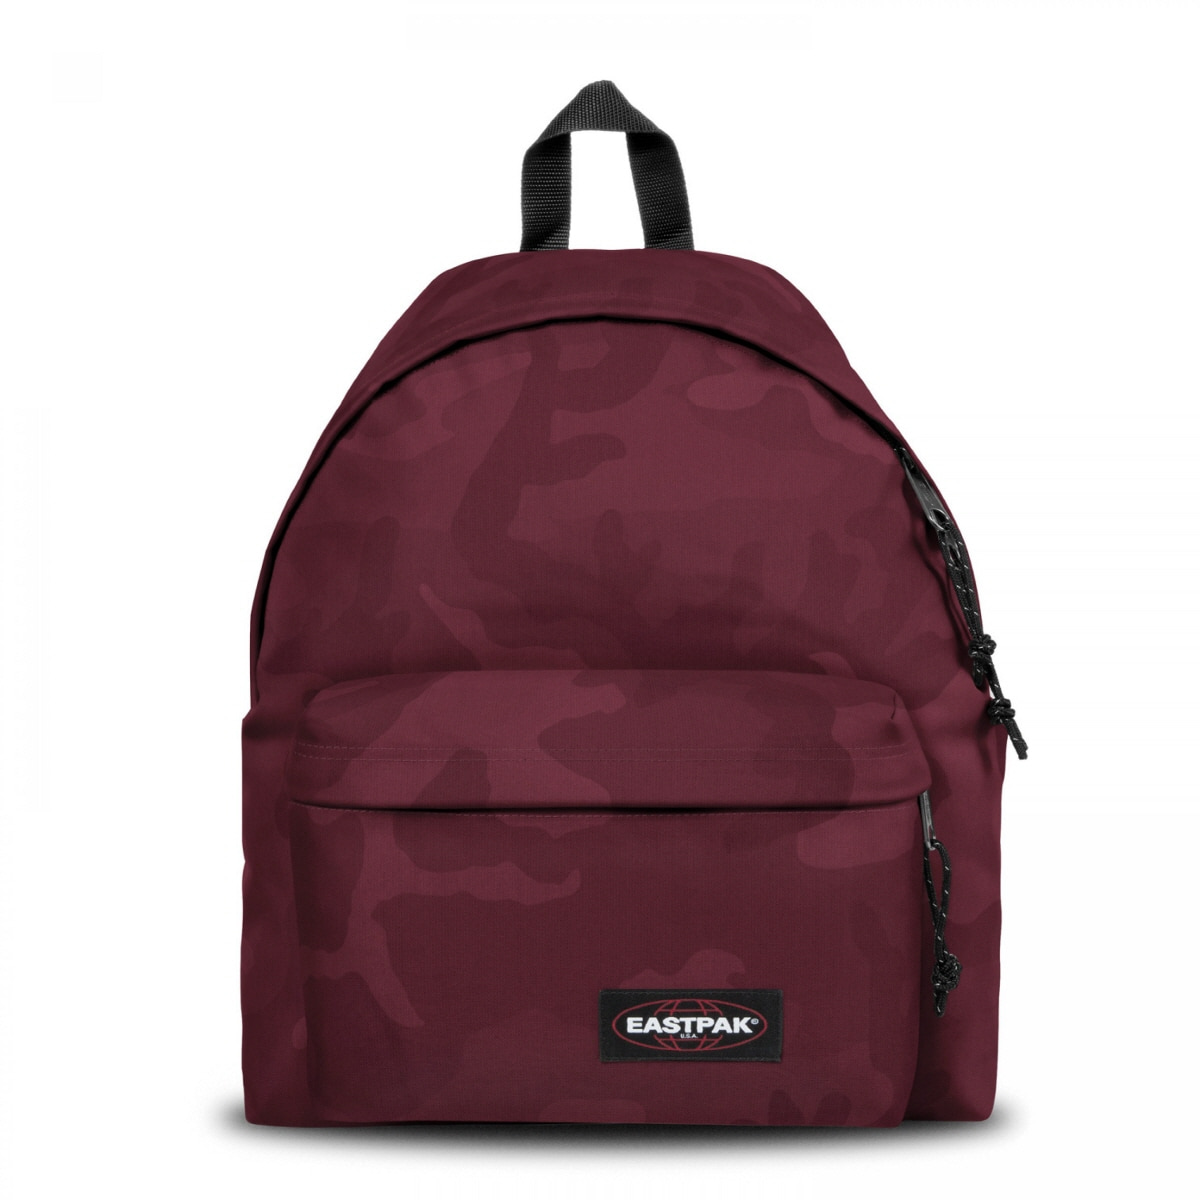 [EASTPAK] AUTHENTIC 백팩 패디드 파커 EJCBA12 12Y